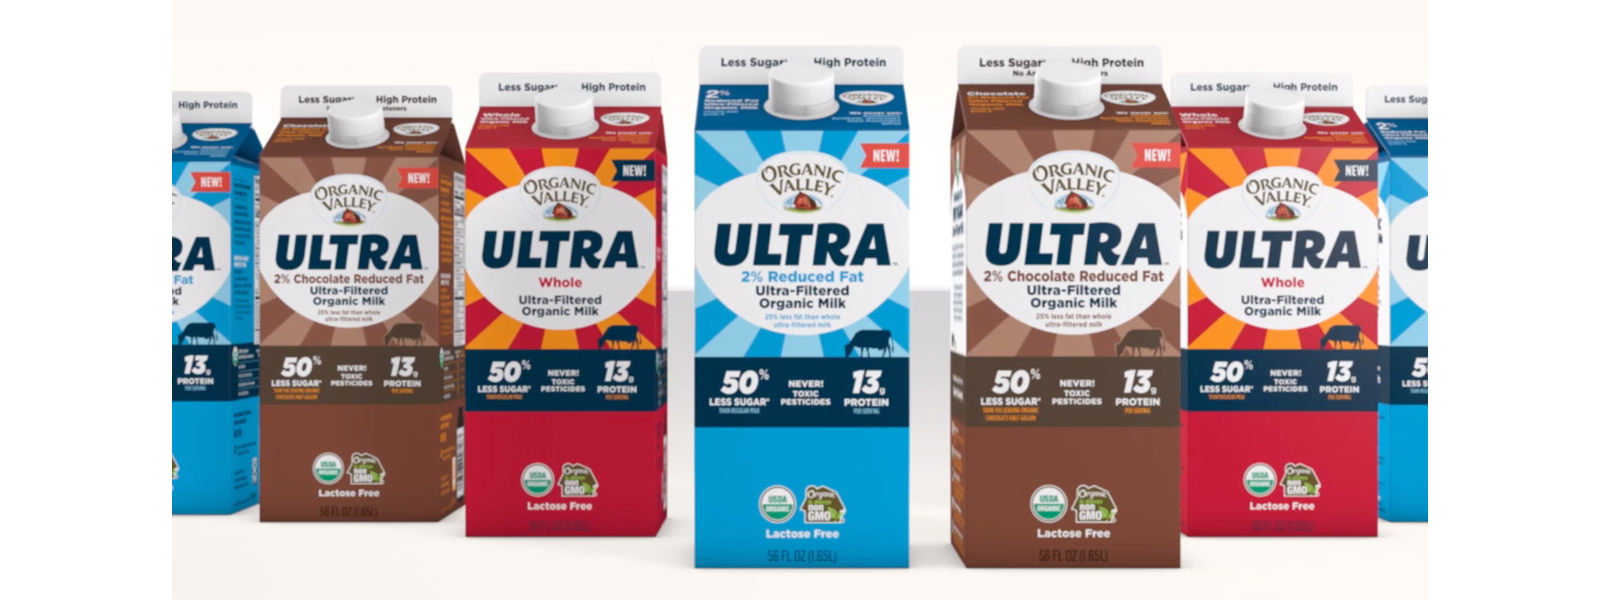 Organic Valley Ultra™, the First Organic Ultra-Filtered Milk, Launches Today